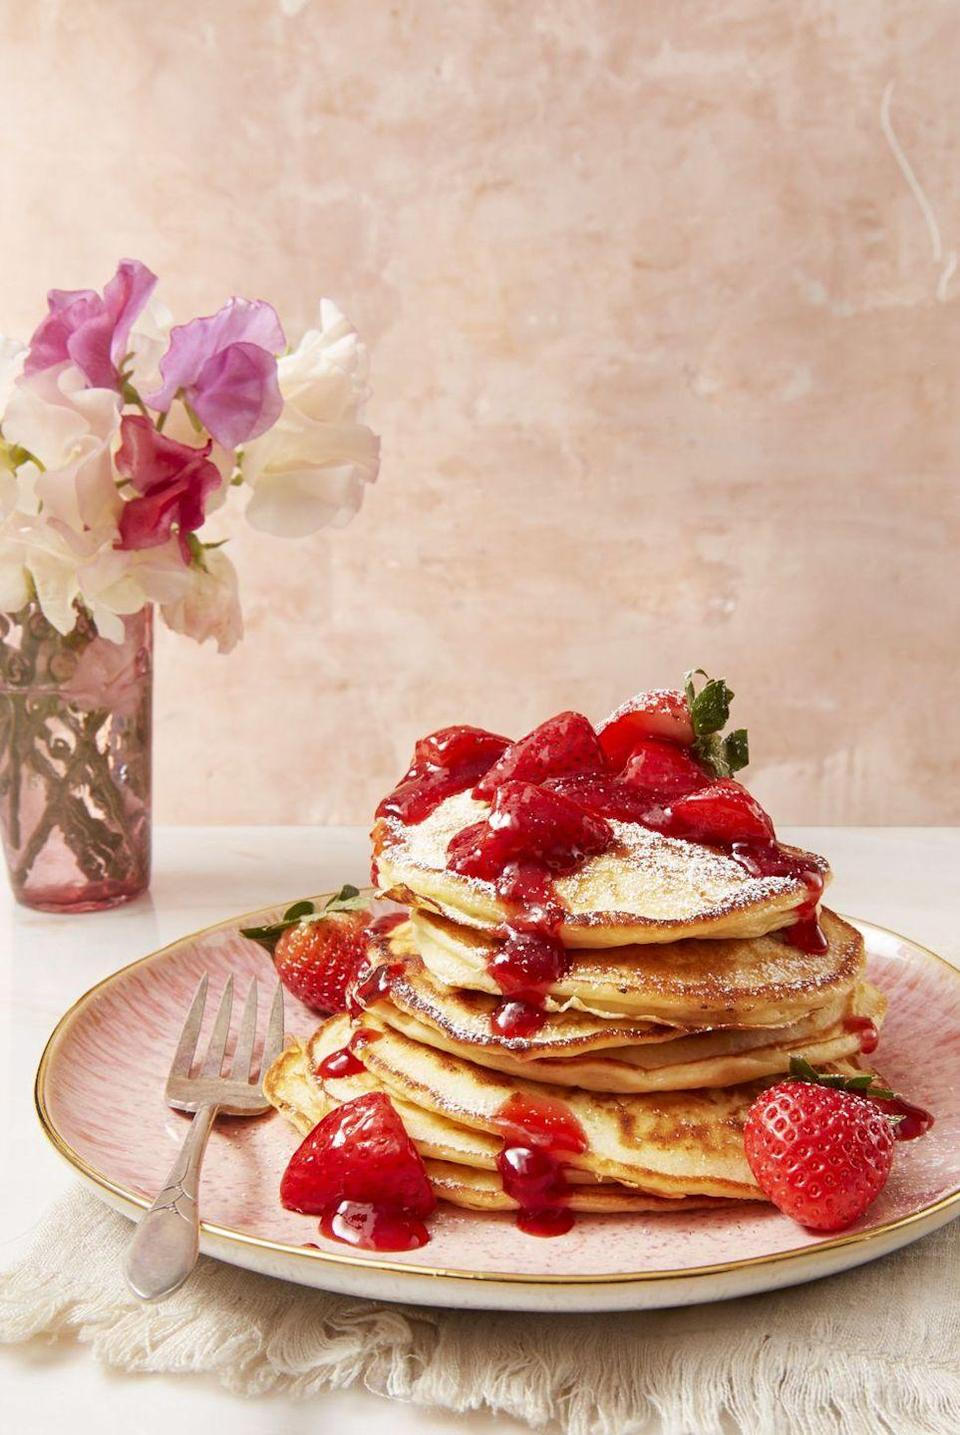 "<p>Dessert for breakfast? Count us in! These cheesecake-like pancakes taste just as sweet as they look.</p><p><em><a href=""https://www.goodhousekeeping.com/food-recipes/a43665/strawberry-cheesecake-flapjacks-recipe/"" rel=""nofollow noopener"" target=""_blank"" data-ylk=""slk:Get the recipe for Strawberry Cheesecake Flapjacks »"" class=""link rapid-noclick-resp"">Get the recipe for Strawberry Cheesecake Flapjacks »</a></em></p>"